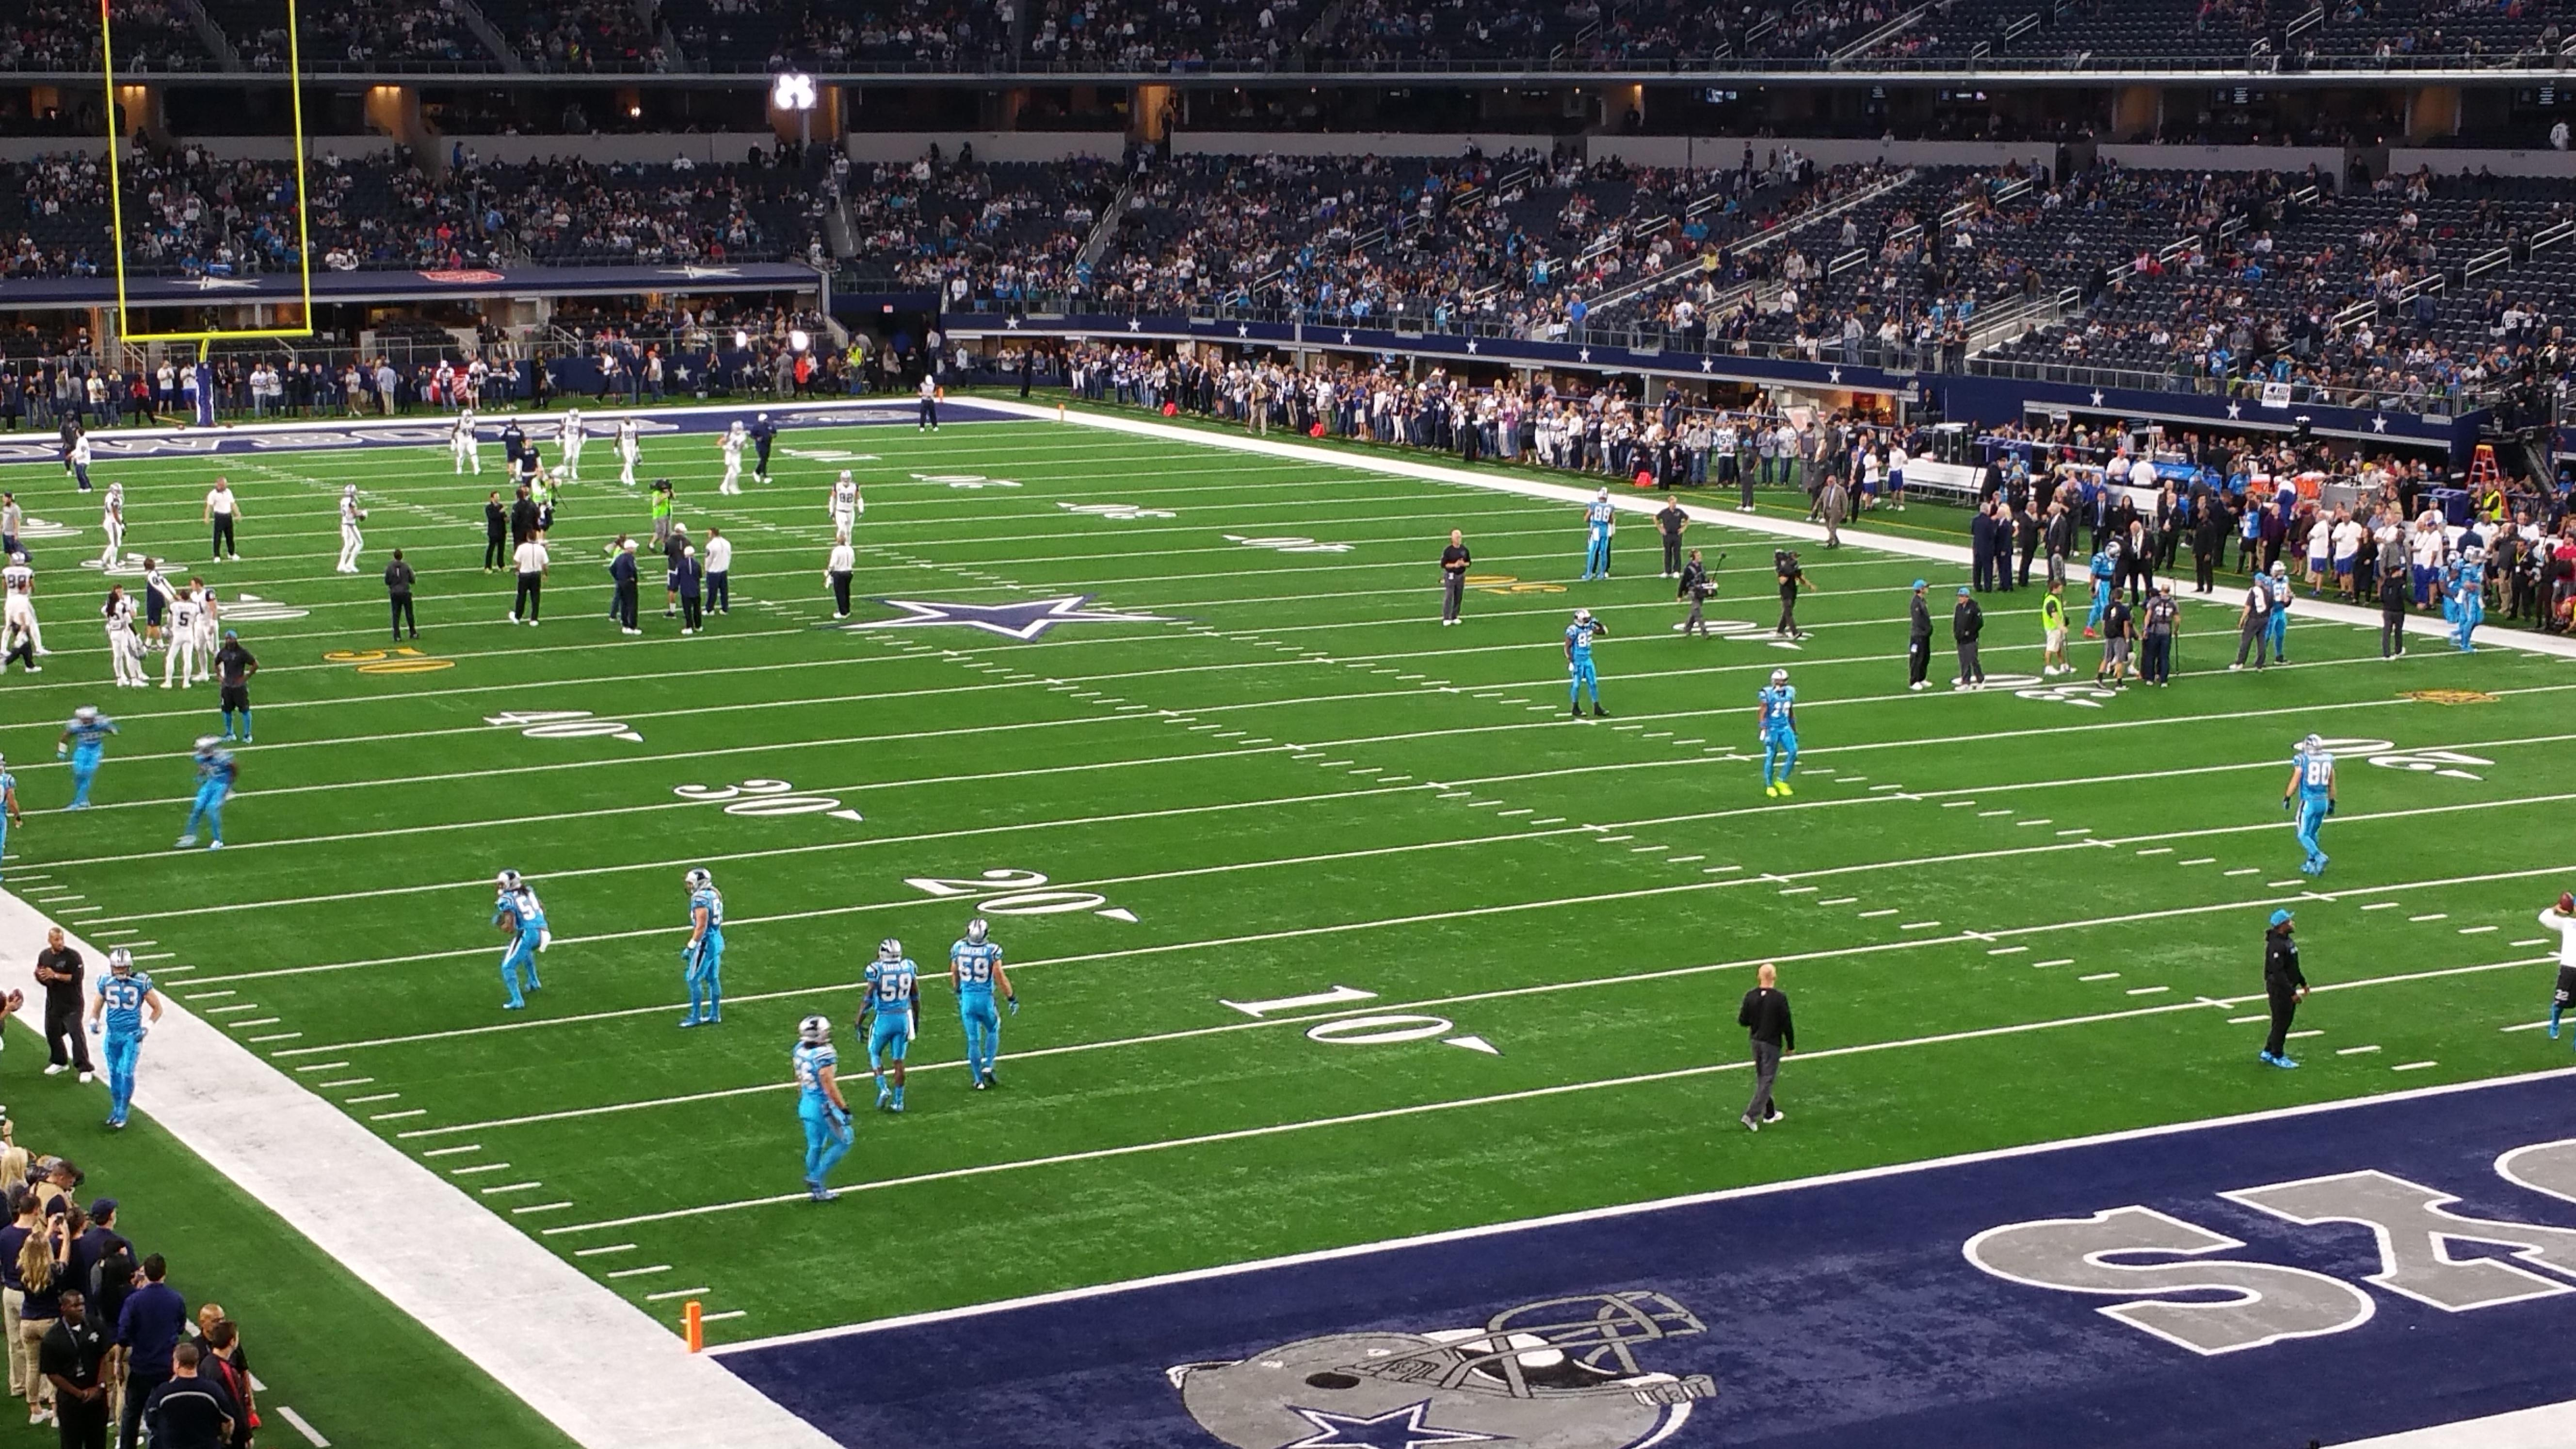 AT&T Stadium Section 201 Row 1 Seat 24